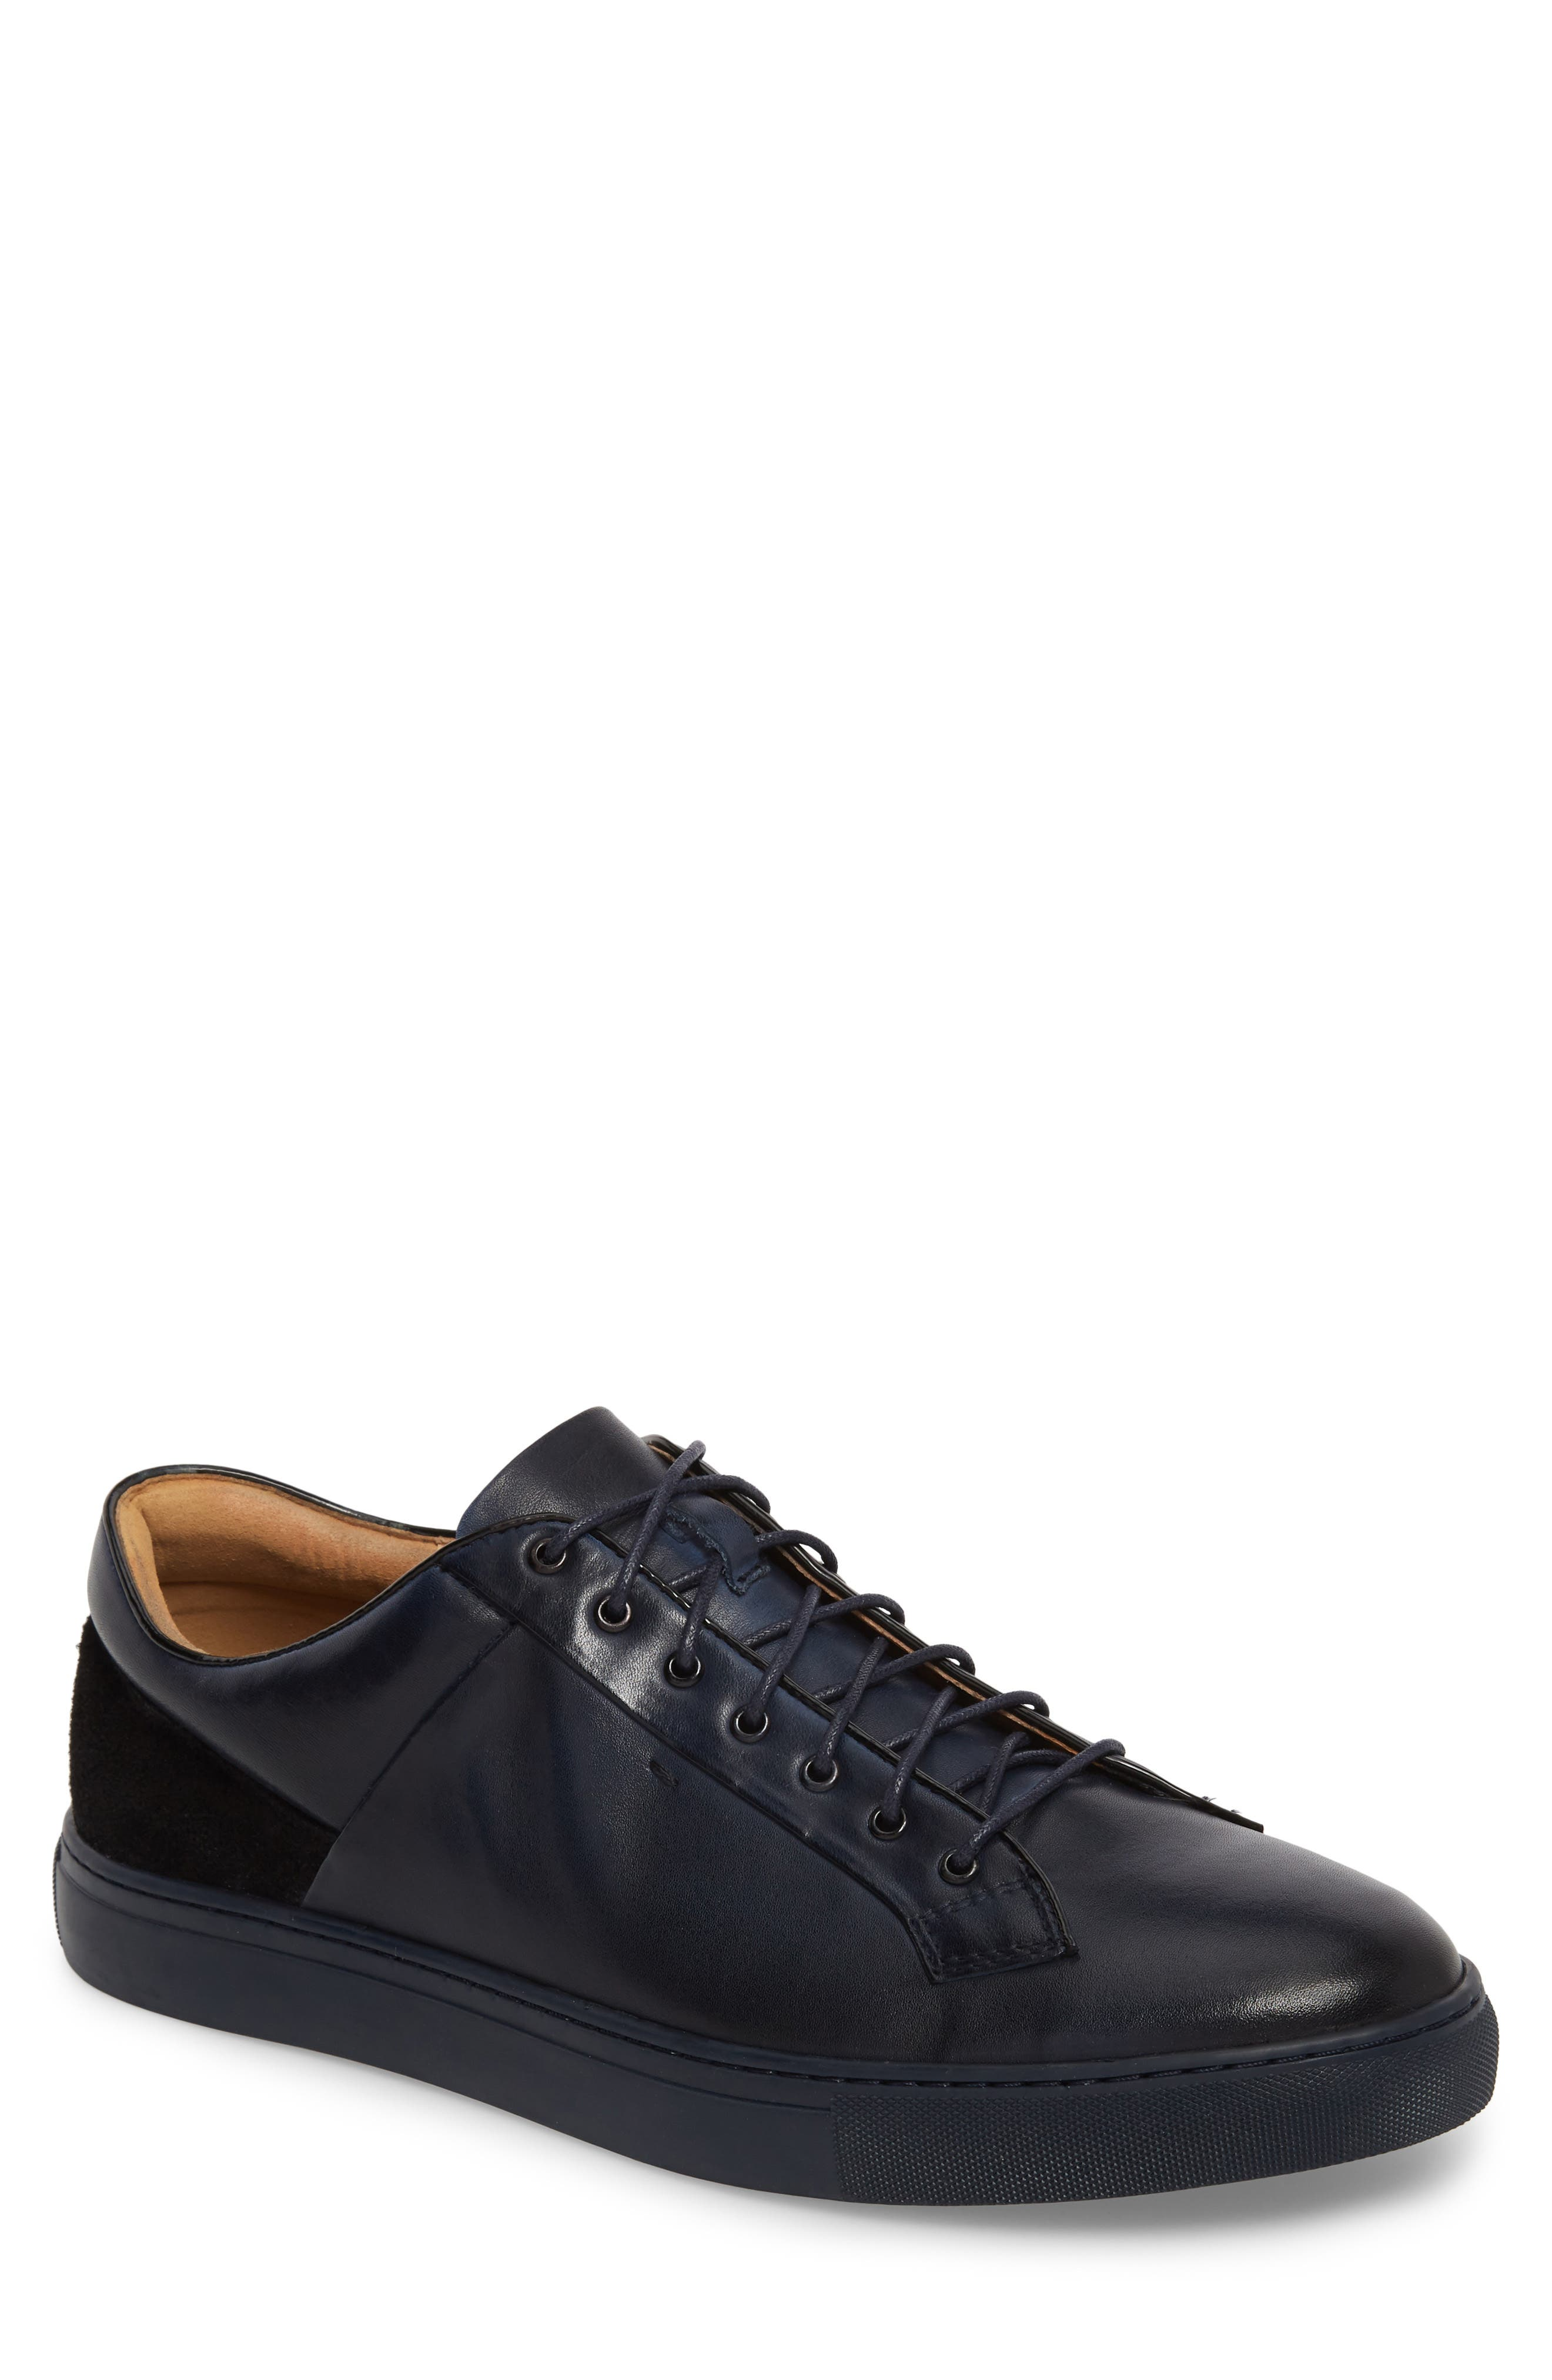 Pitch Low Top Sneaker,                             Main thumbnail 1, color,                             Navy Leather/ Suede